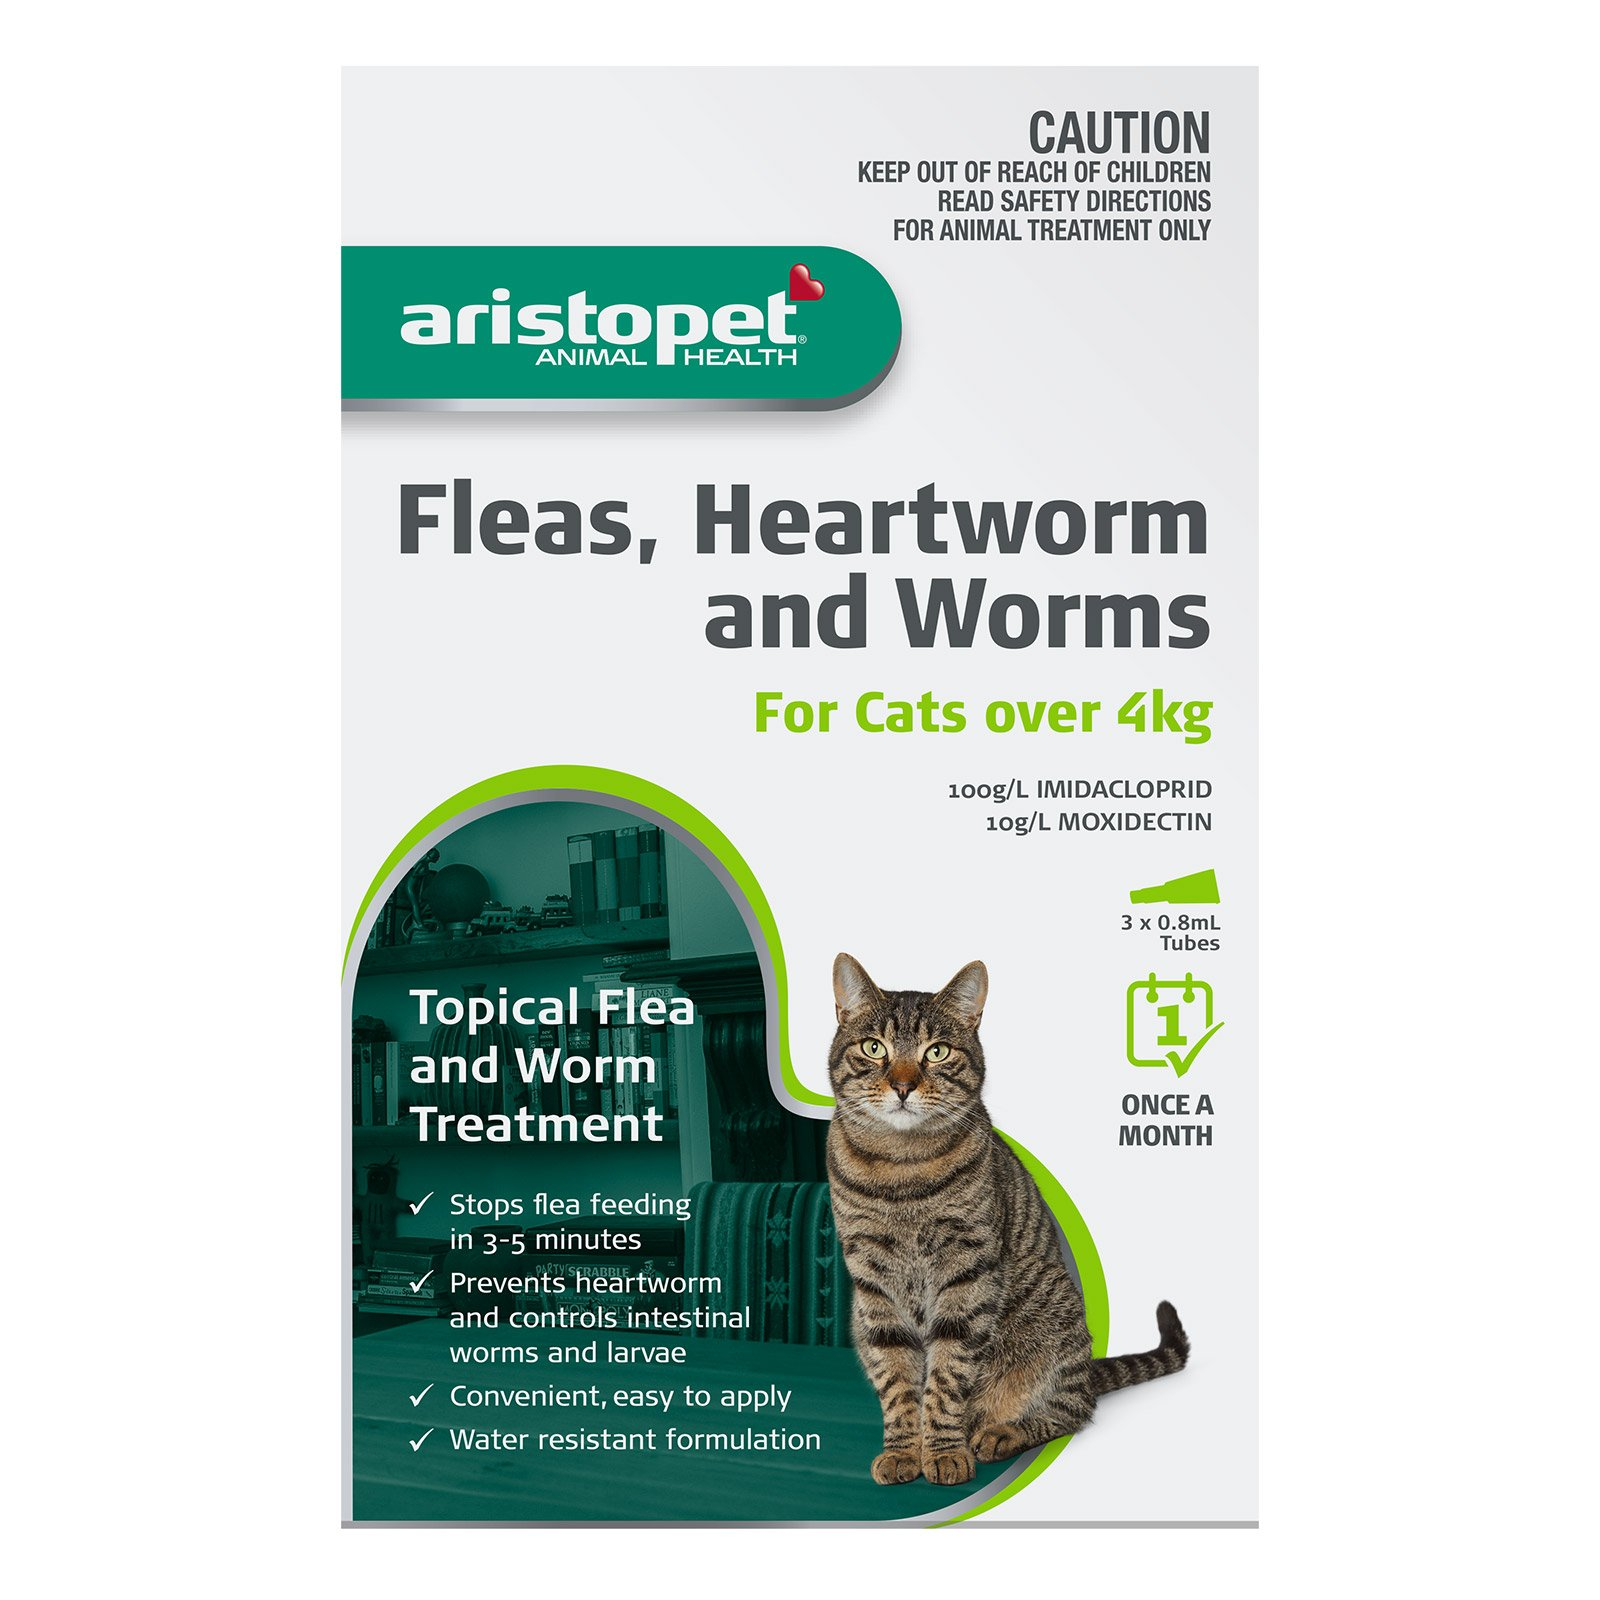 aristopet-treatment-for-cats-over-4kg-3pack.jpg